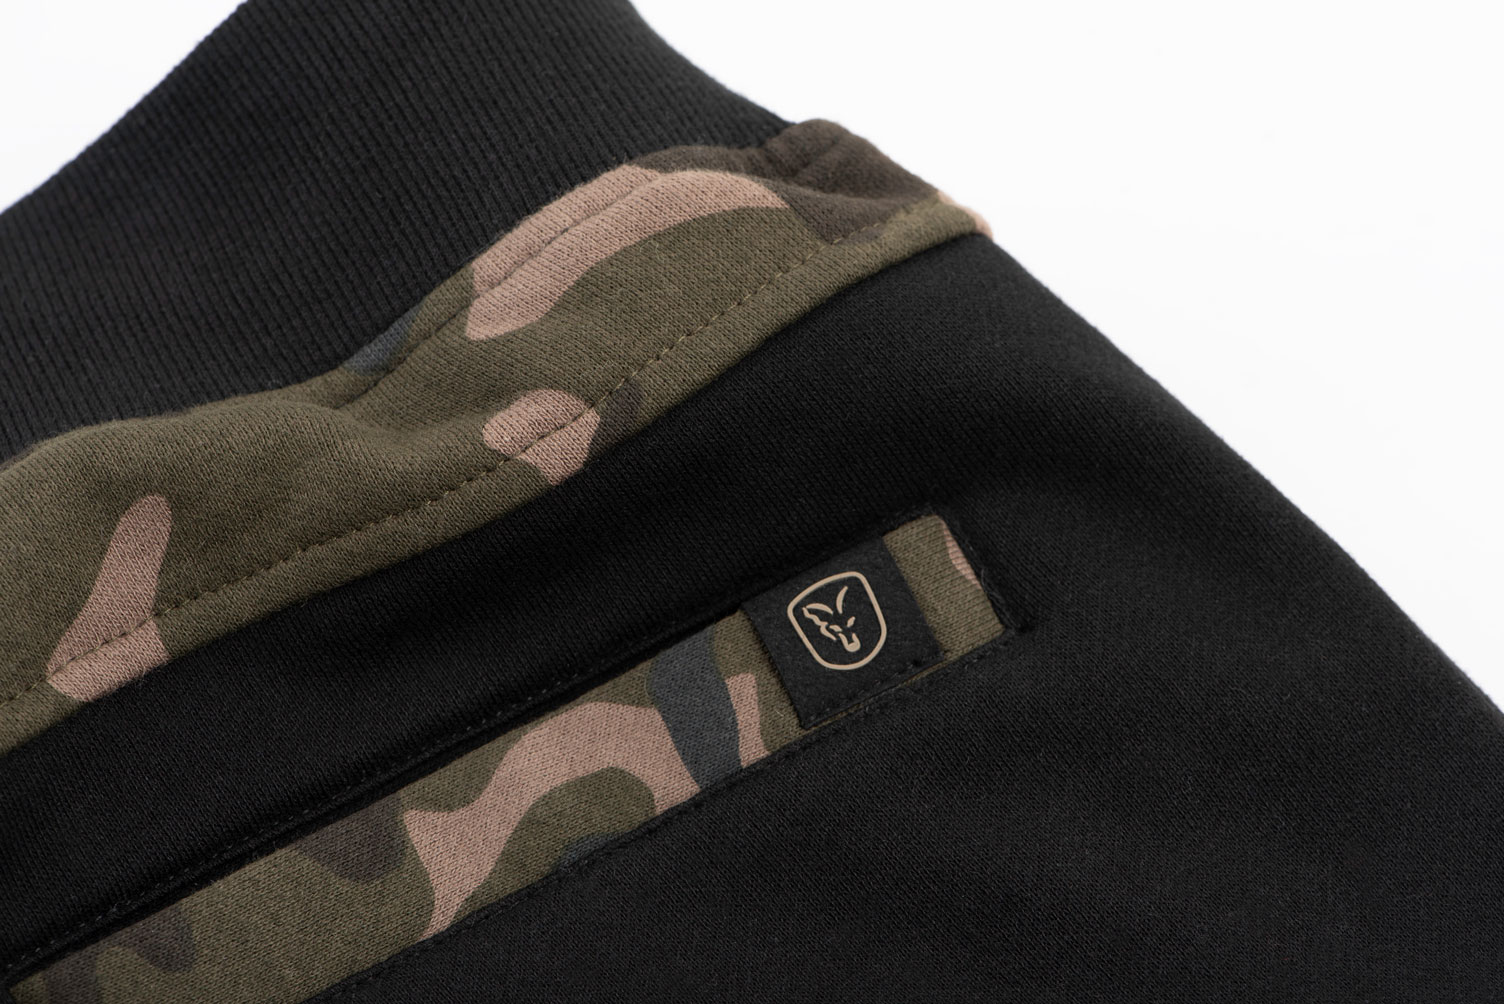 black_camo_joggers_back_pocket_detailjpg